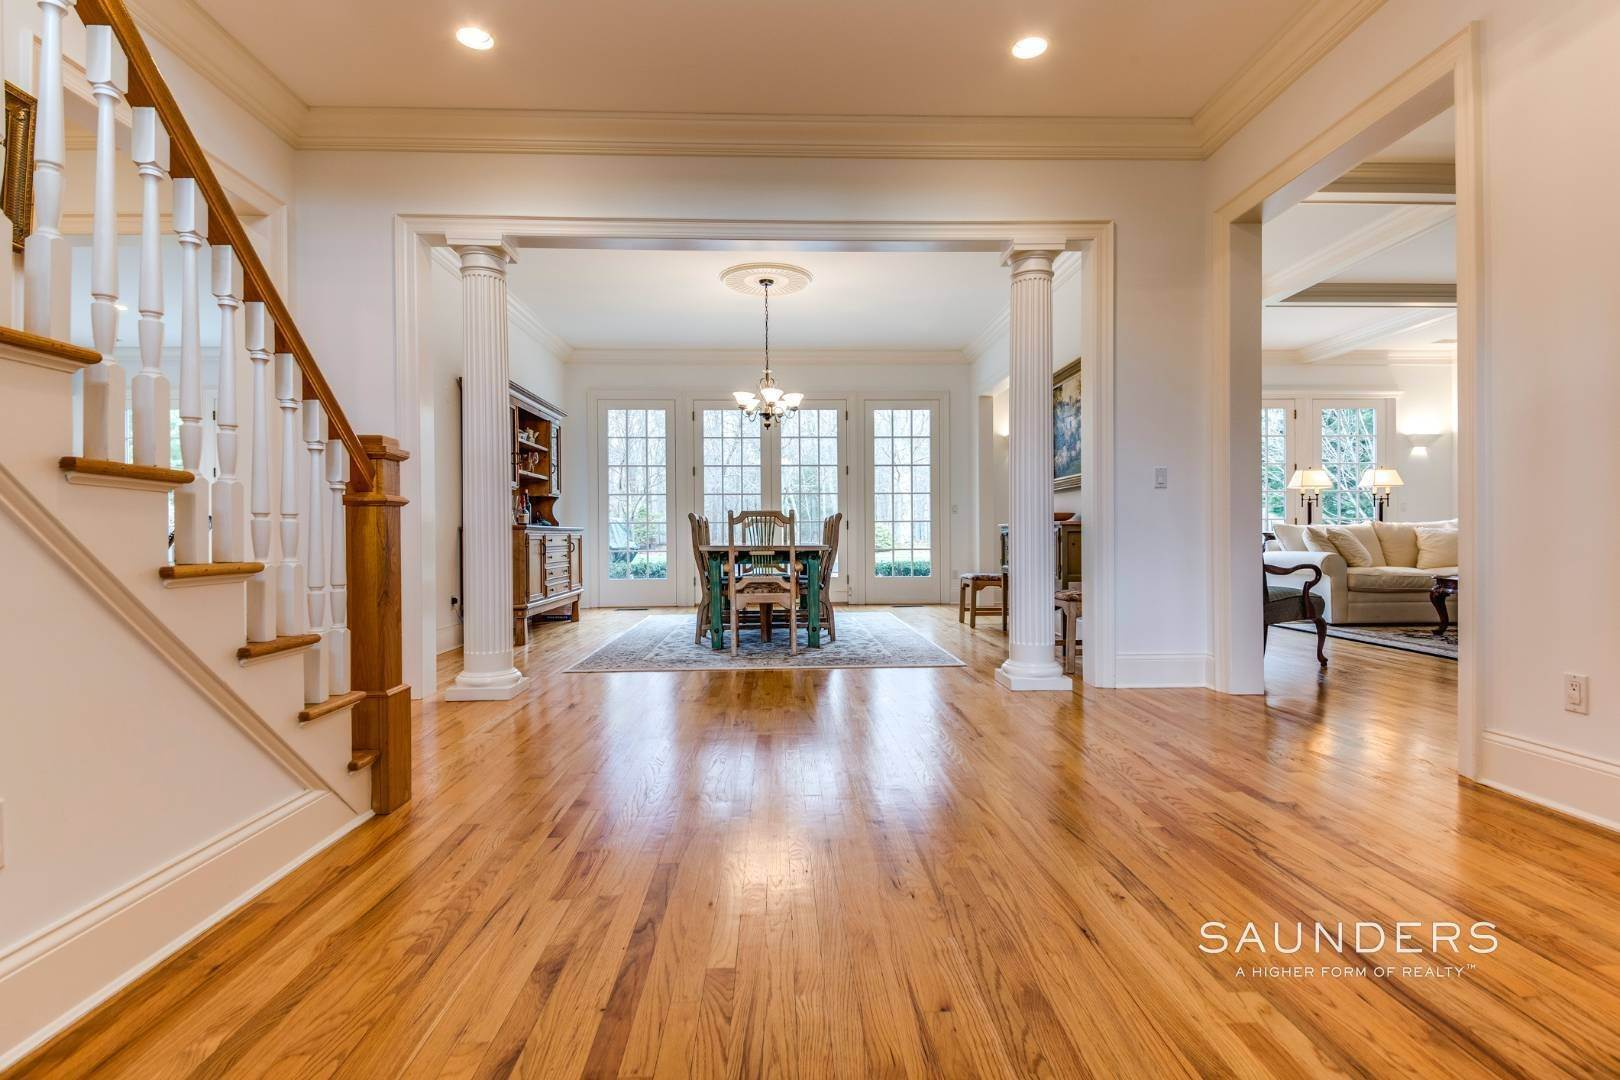 3. Single Family Homes for Sale at Builder's Own, Hamptons Traditional 33 Cedar Trails, East Hampton, East Hampton Town, NY 11937